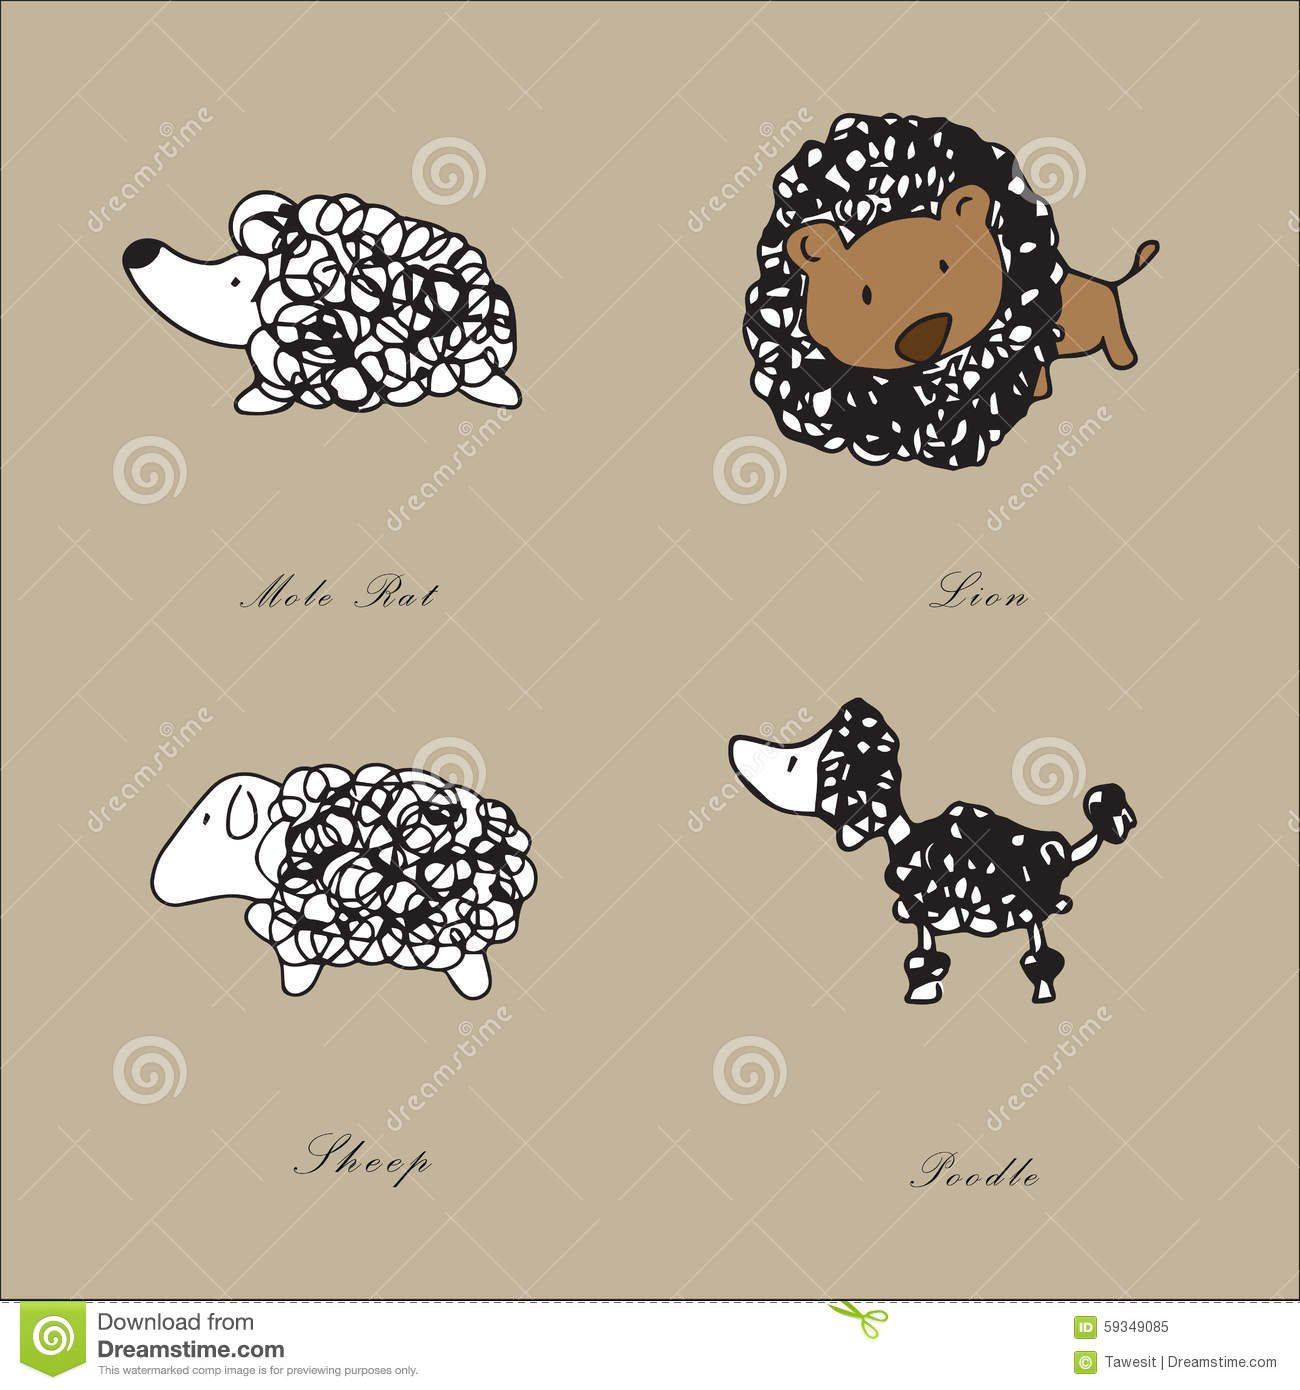 Line Drawings Of Cartoon Animals : Animal line drawing stock illustration image